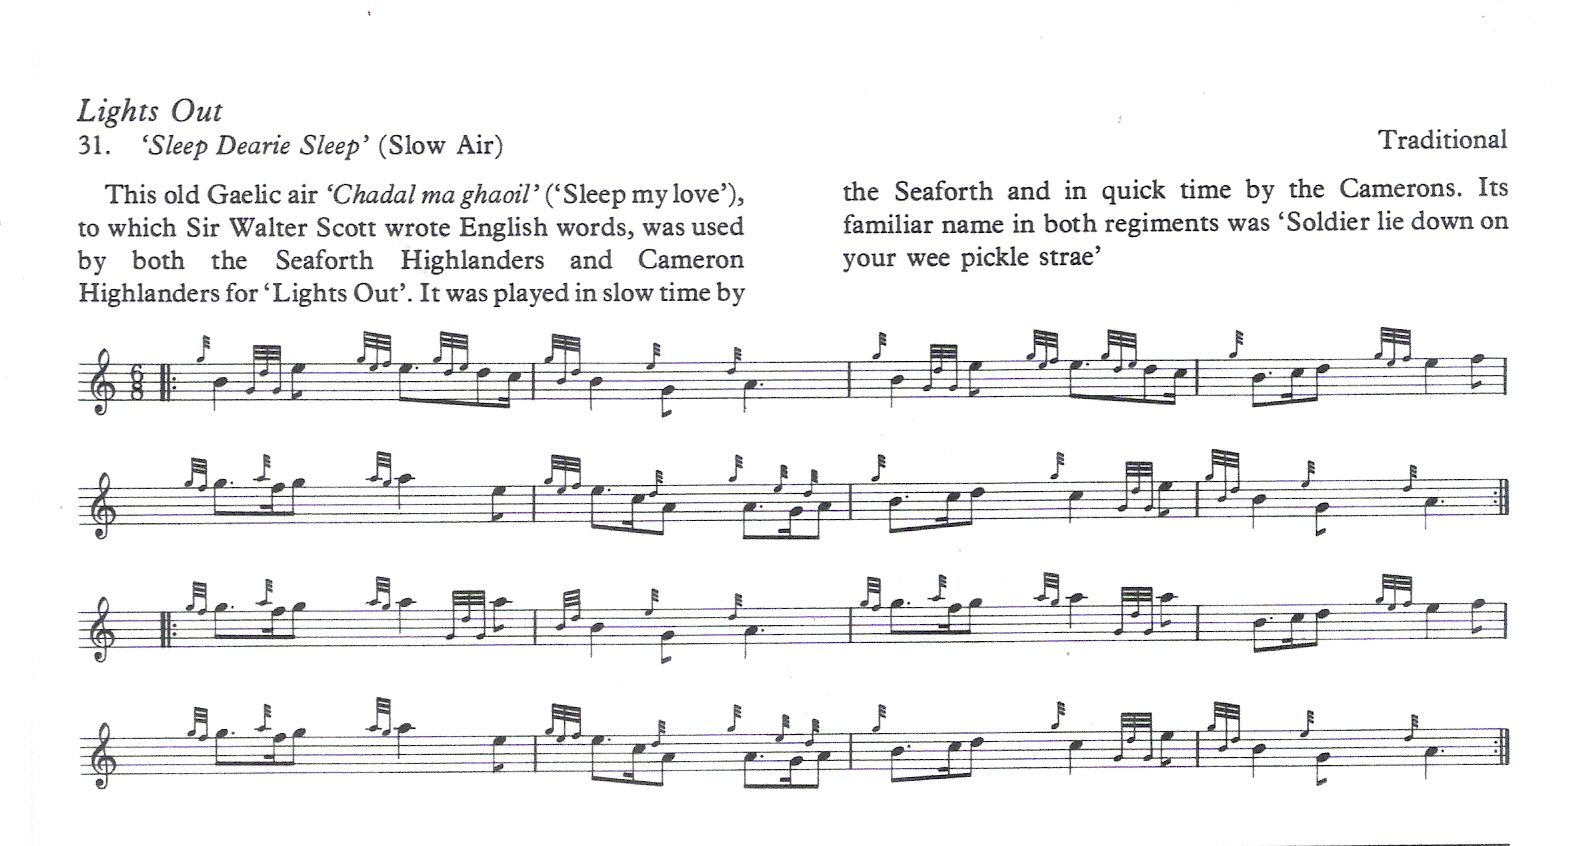 braveheart theme song sheet music for bagpipes Google